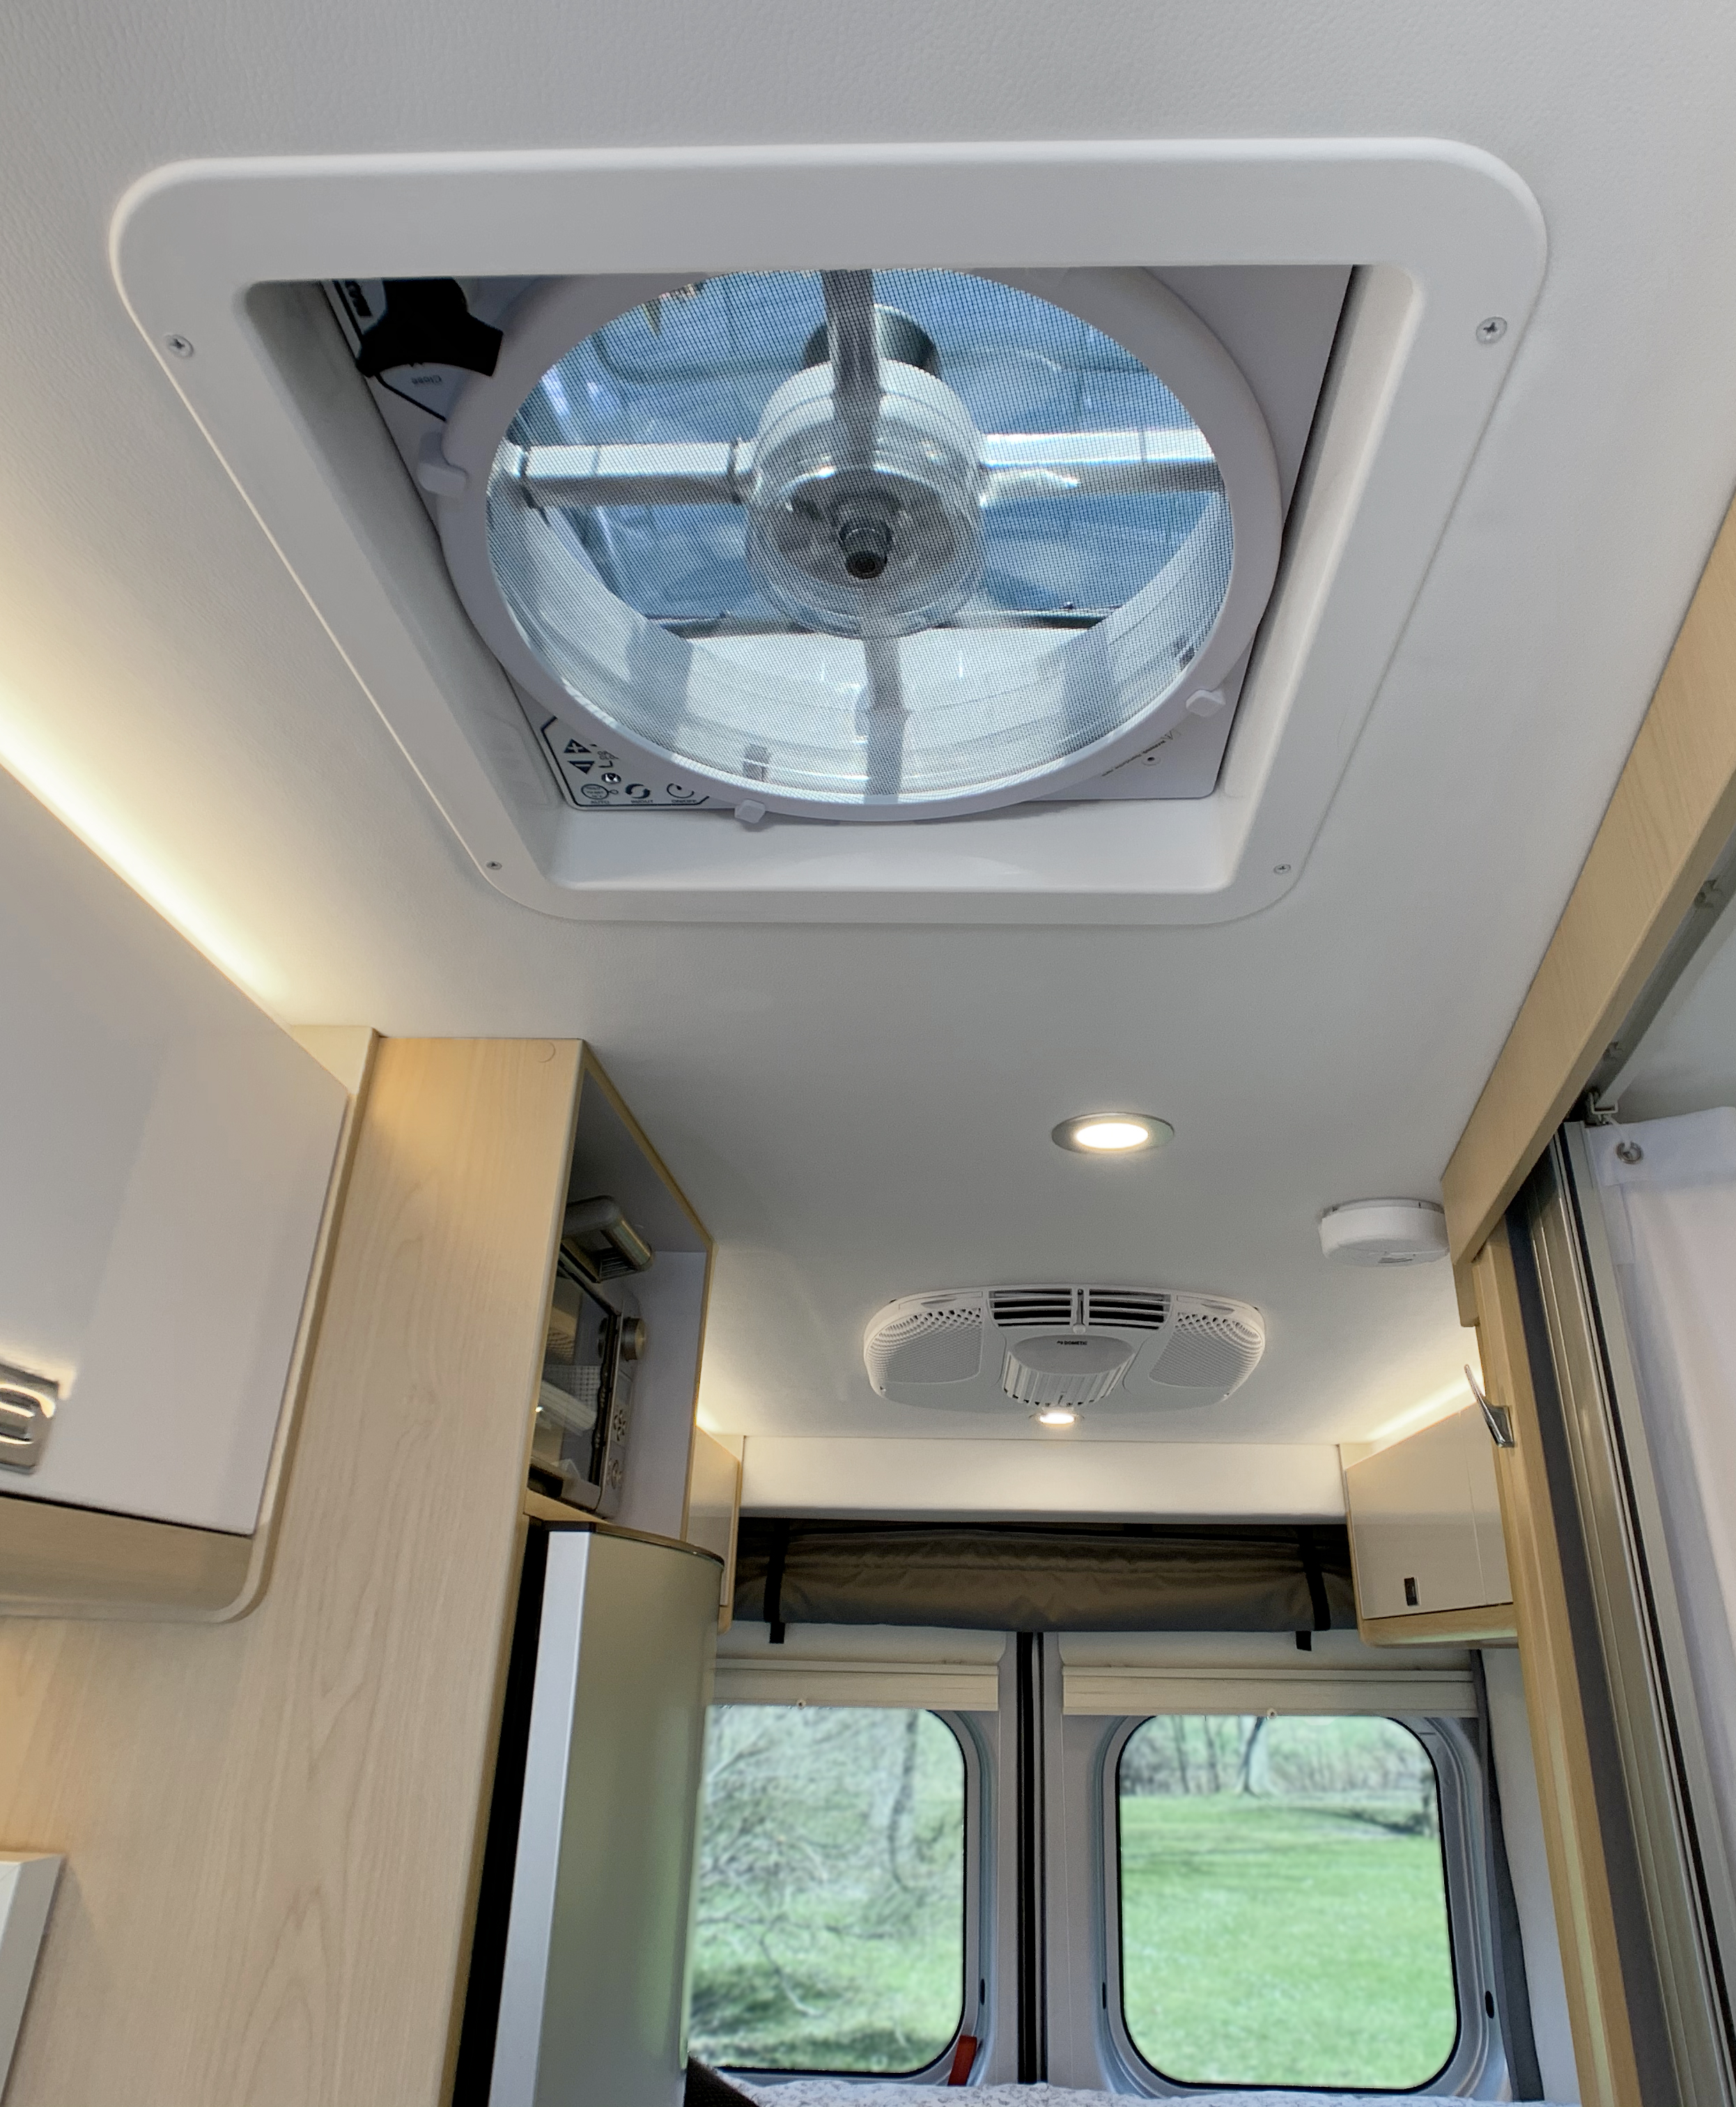 Panoramic RV - Air conditioning and ventilation